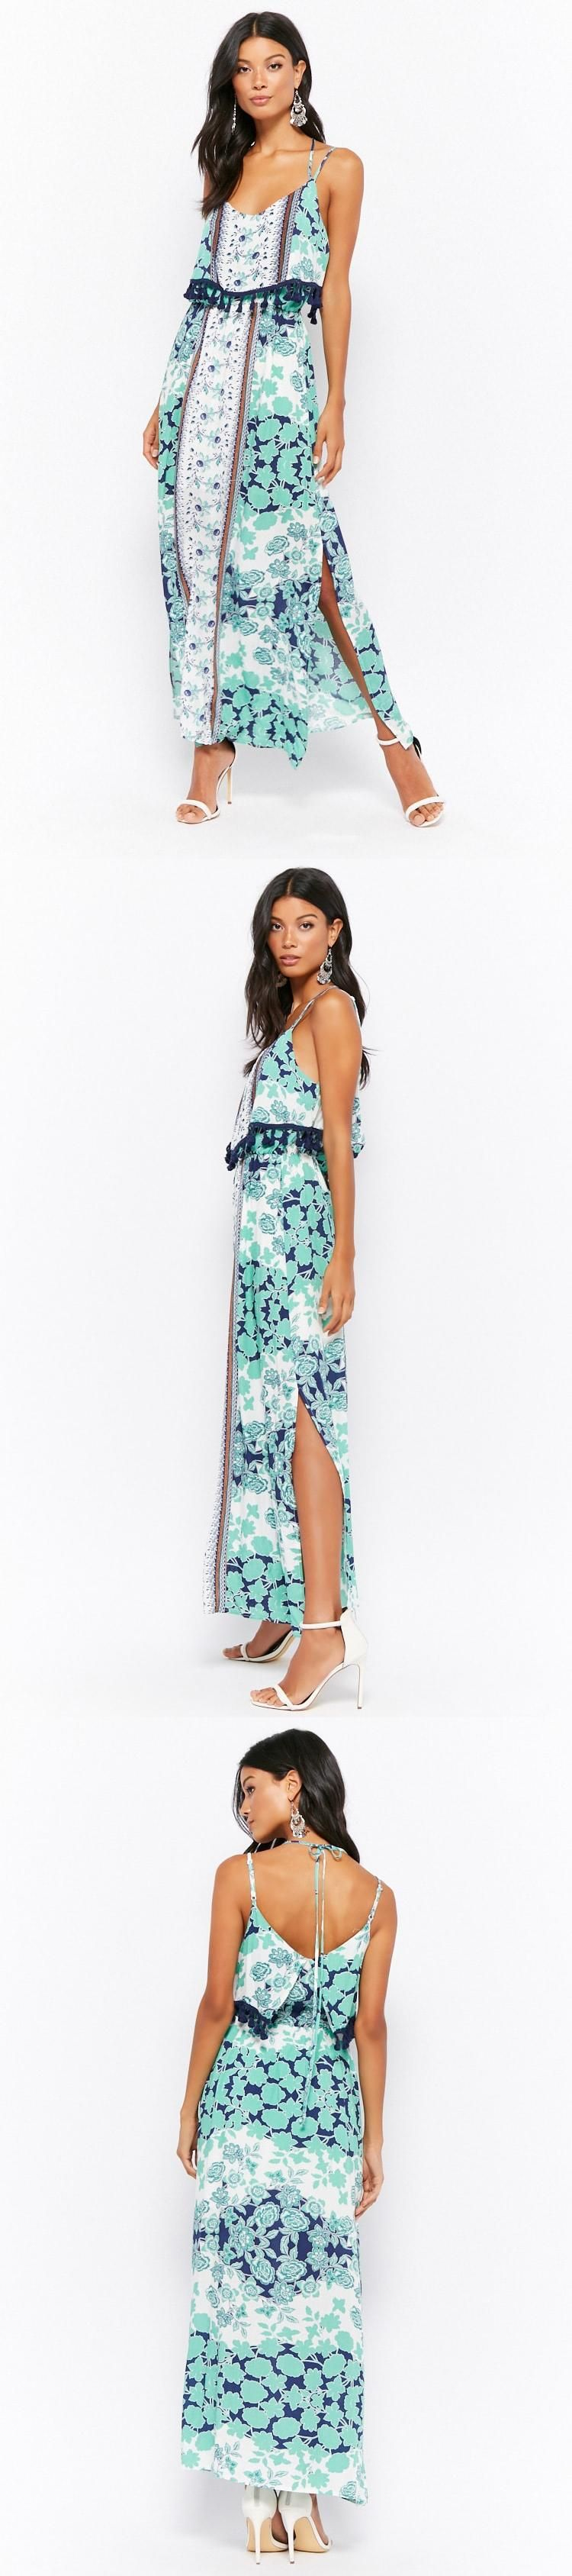 Layered floral print maxi dress usd forever new